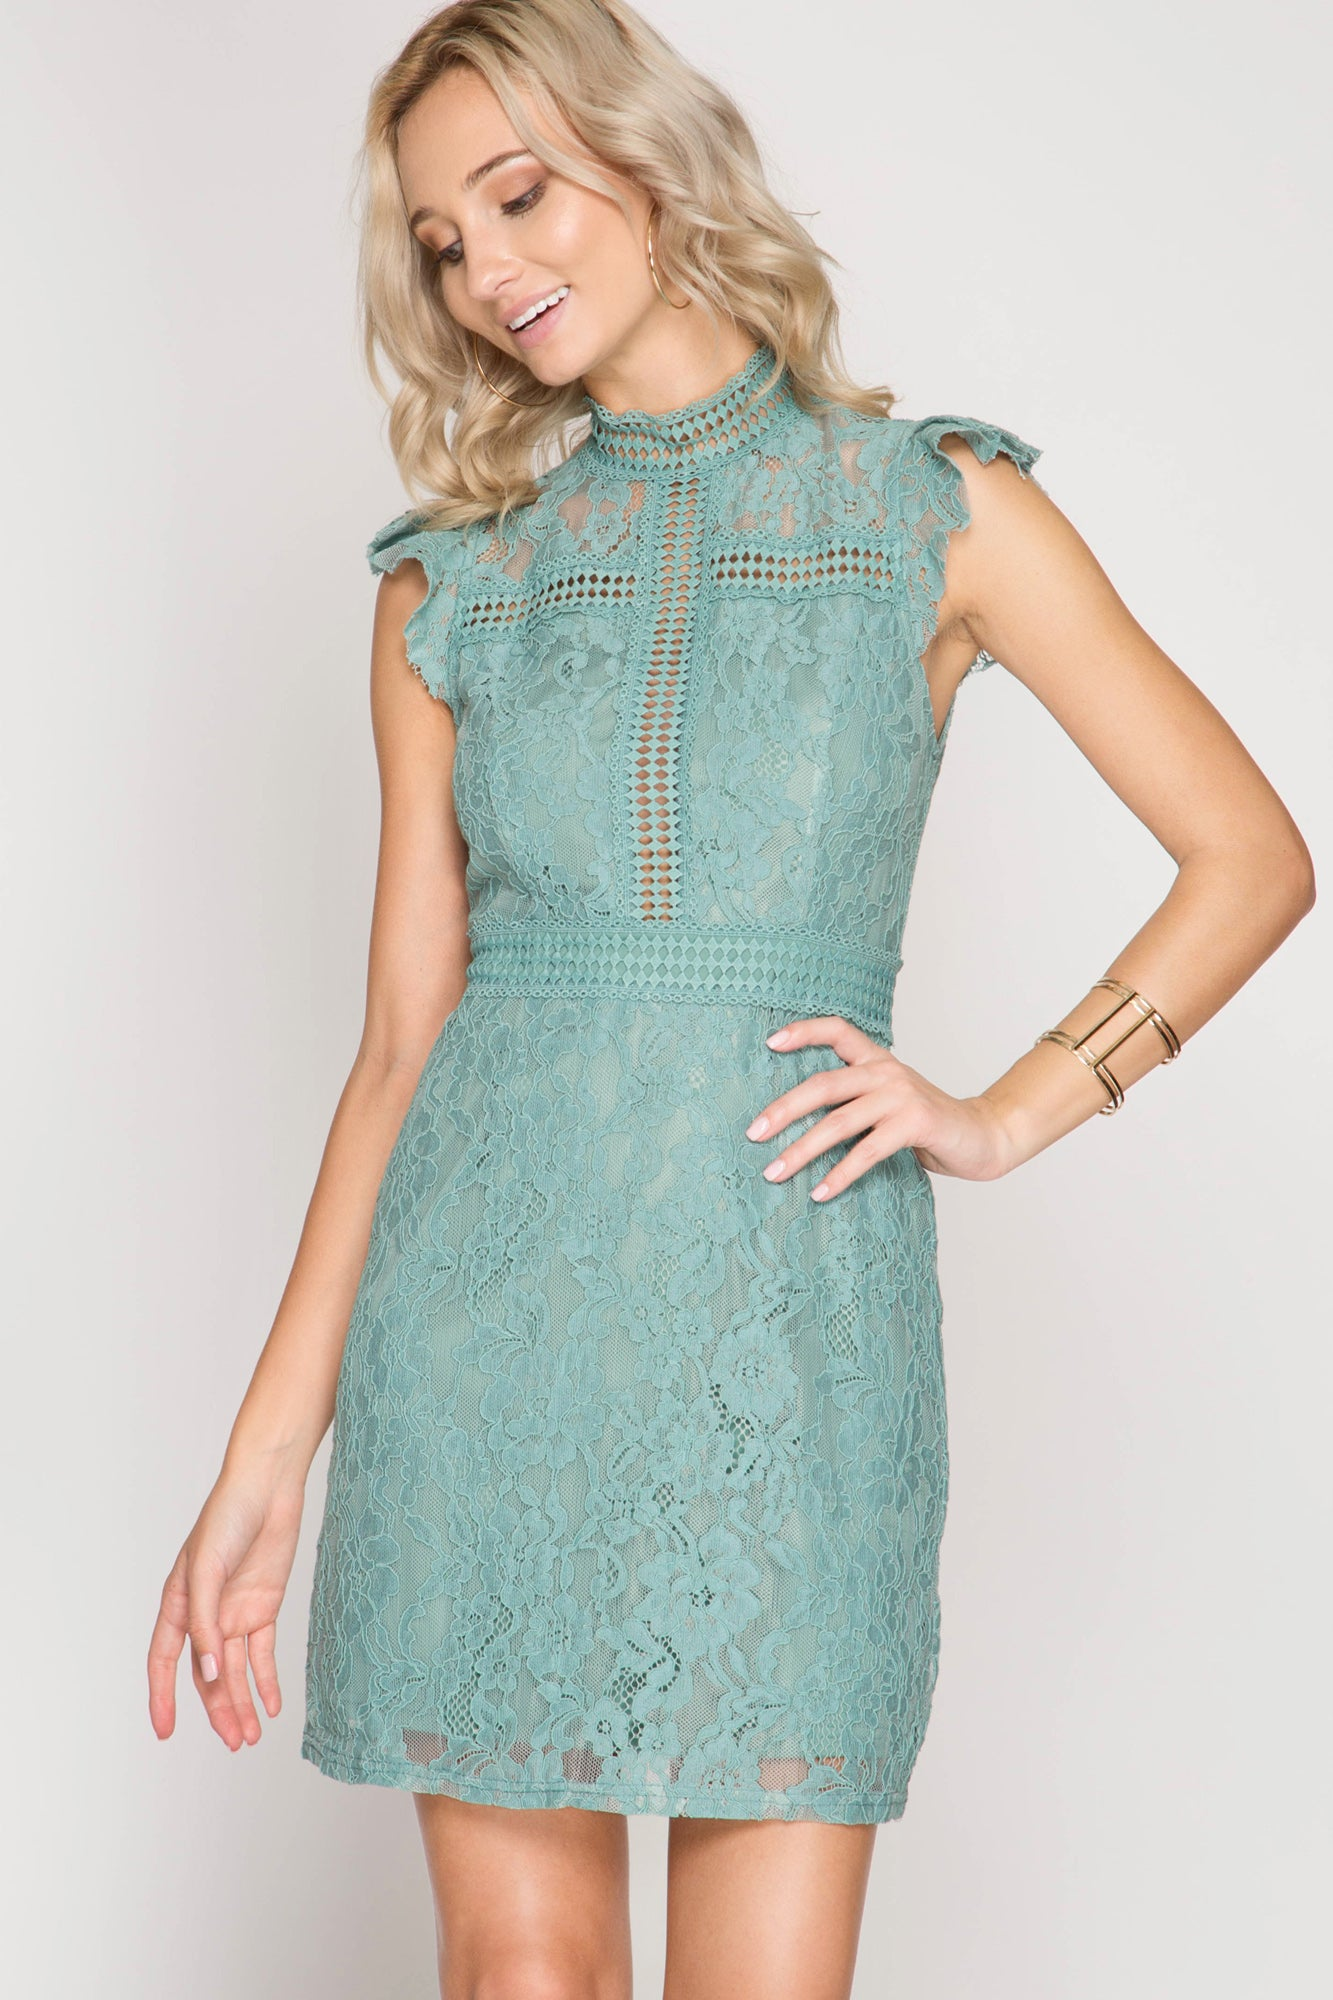 Ruffled Sleeve, High Neck, Crochet & Lace Dress with Lining